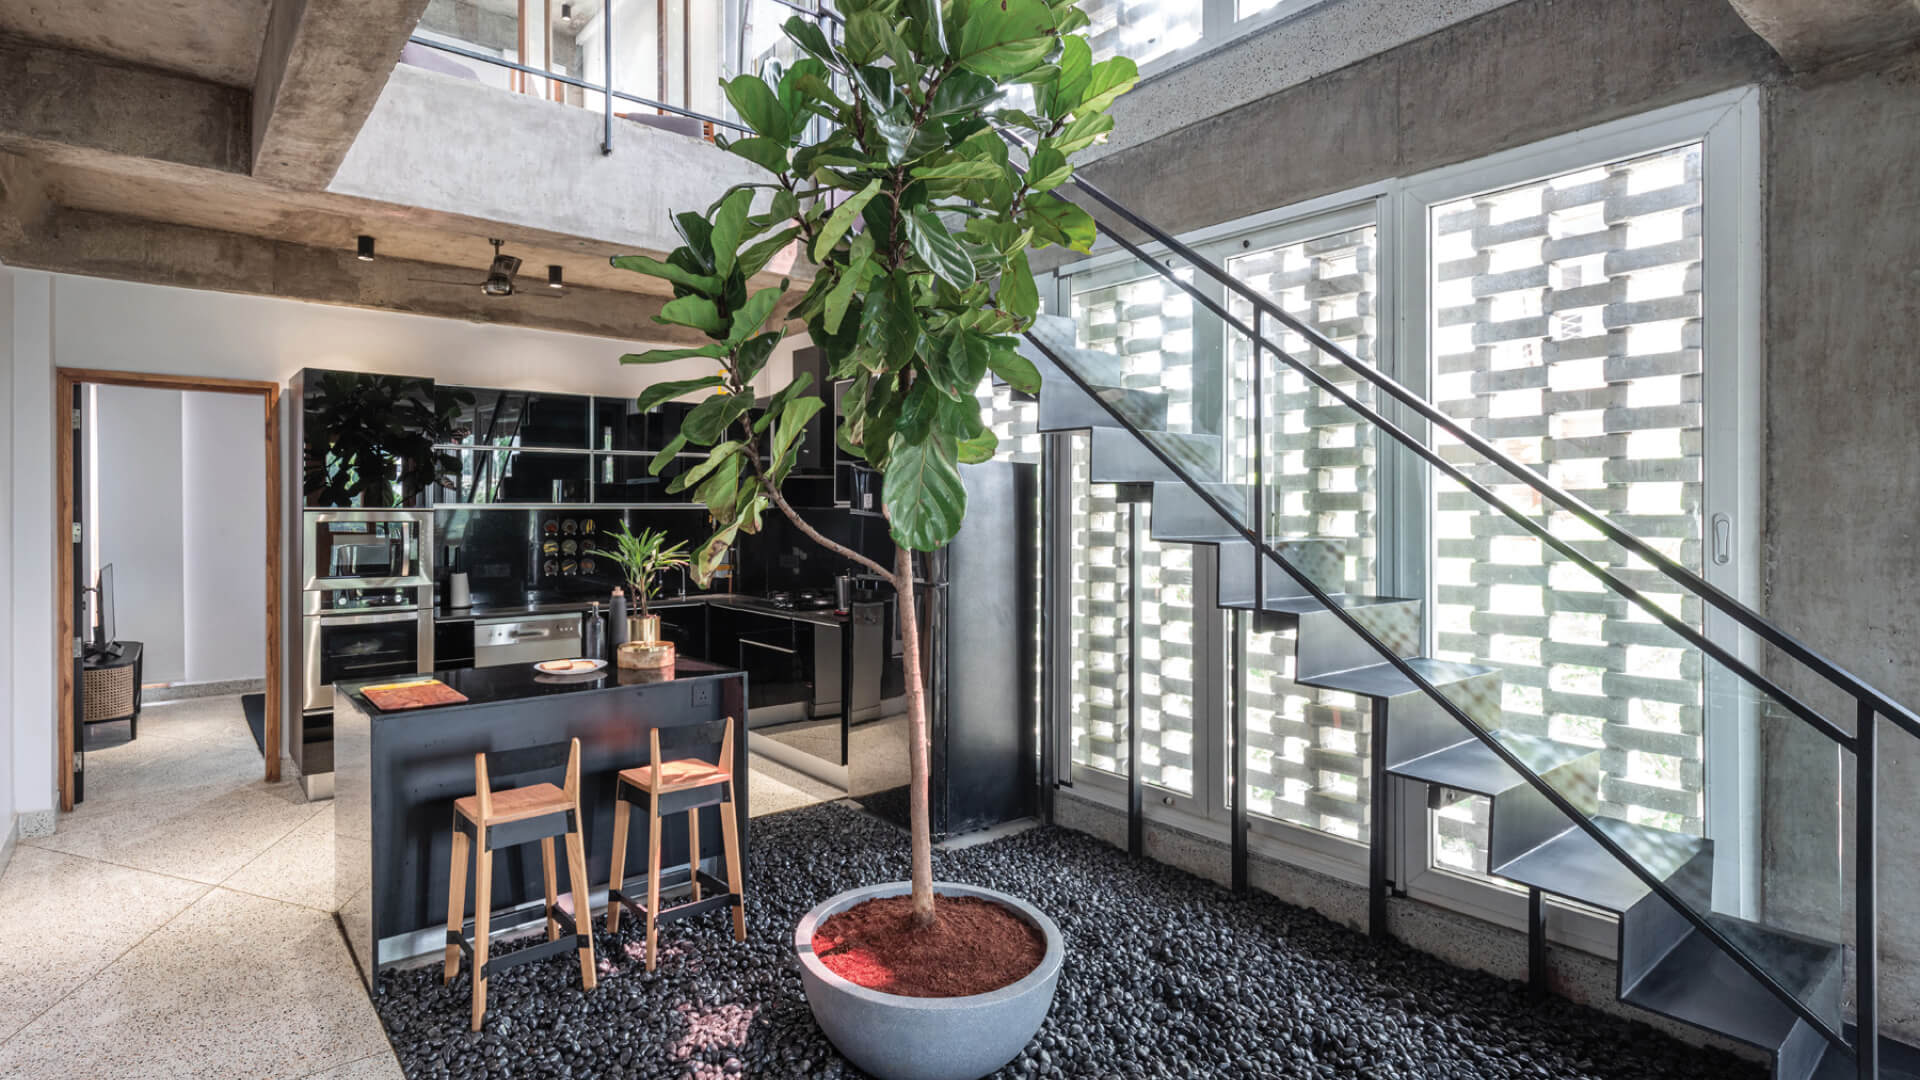 A concrete oasis in a concrete desert: The House in 1970 by Architects Collaborative